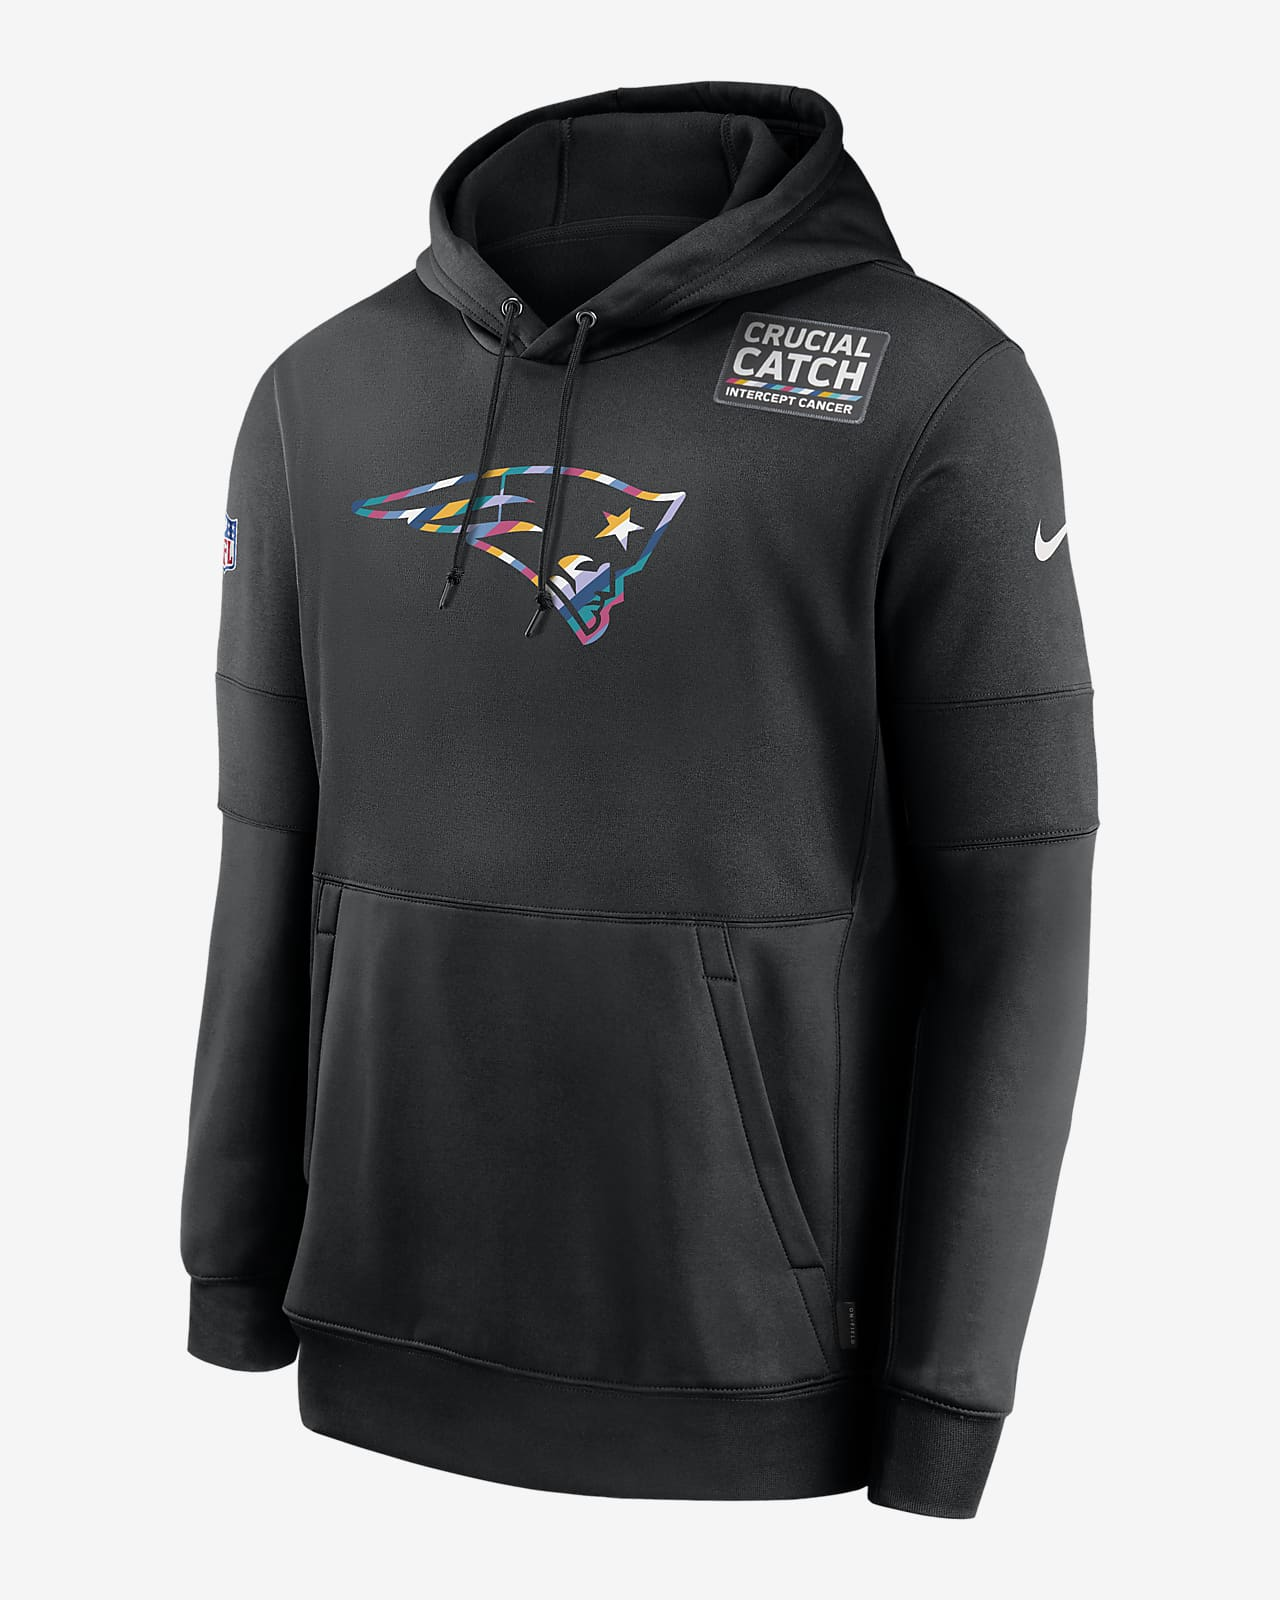 Nike Therma Crucial Catch (NFL Patriots) Men's Hoodie